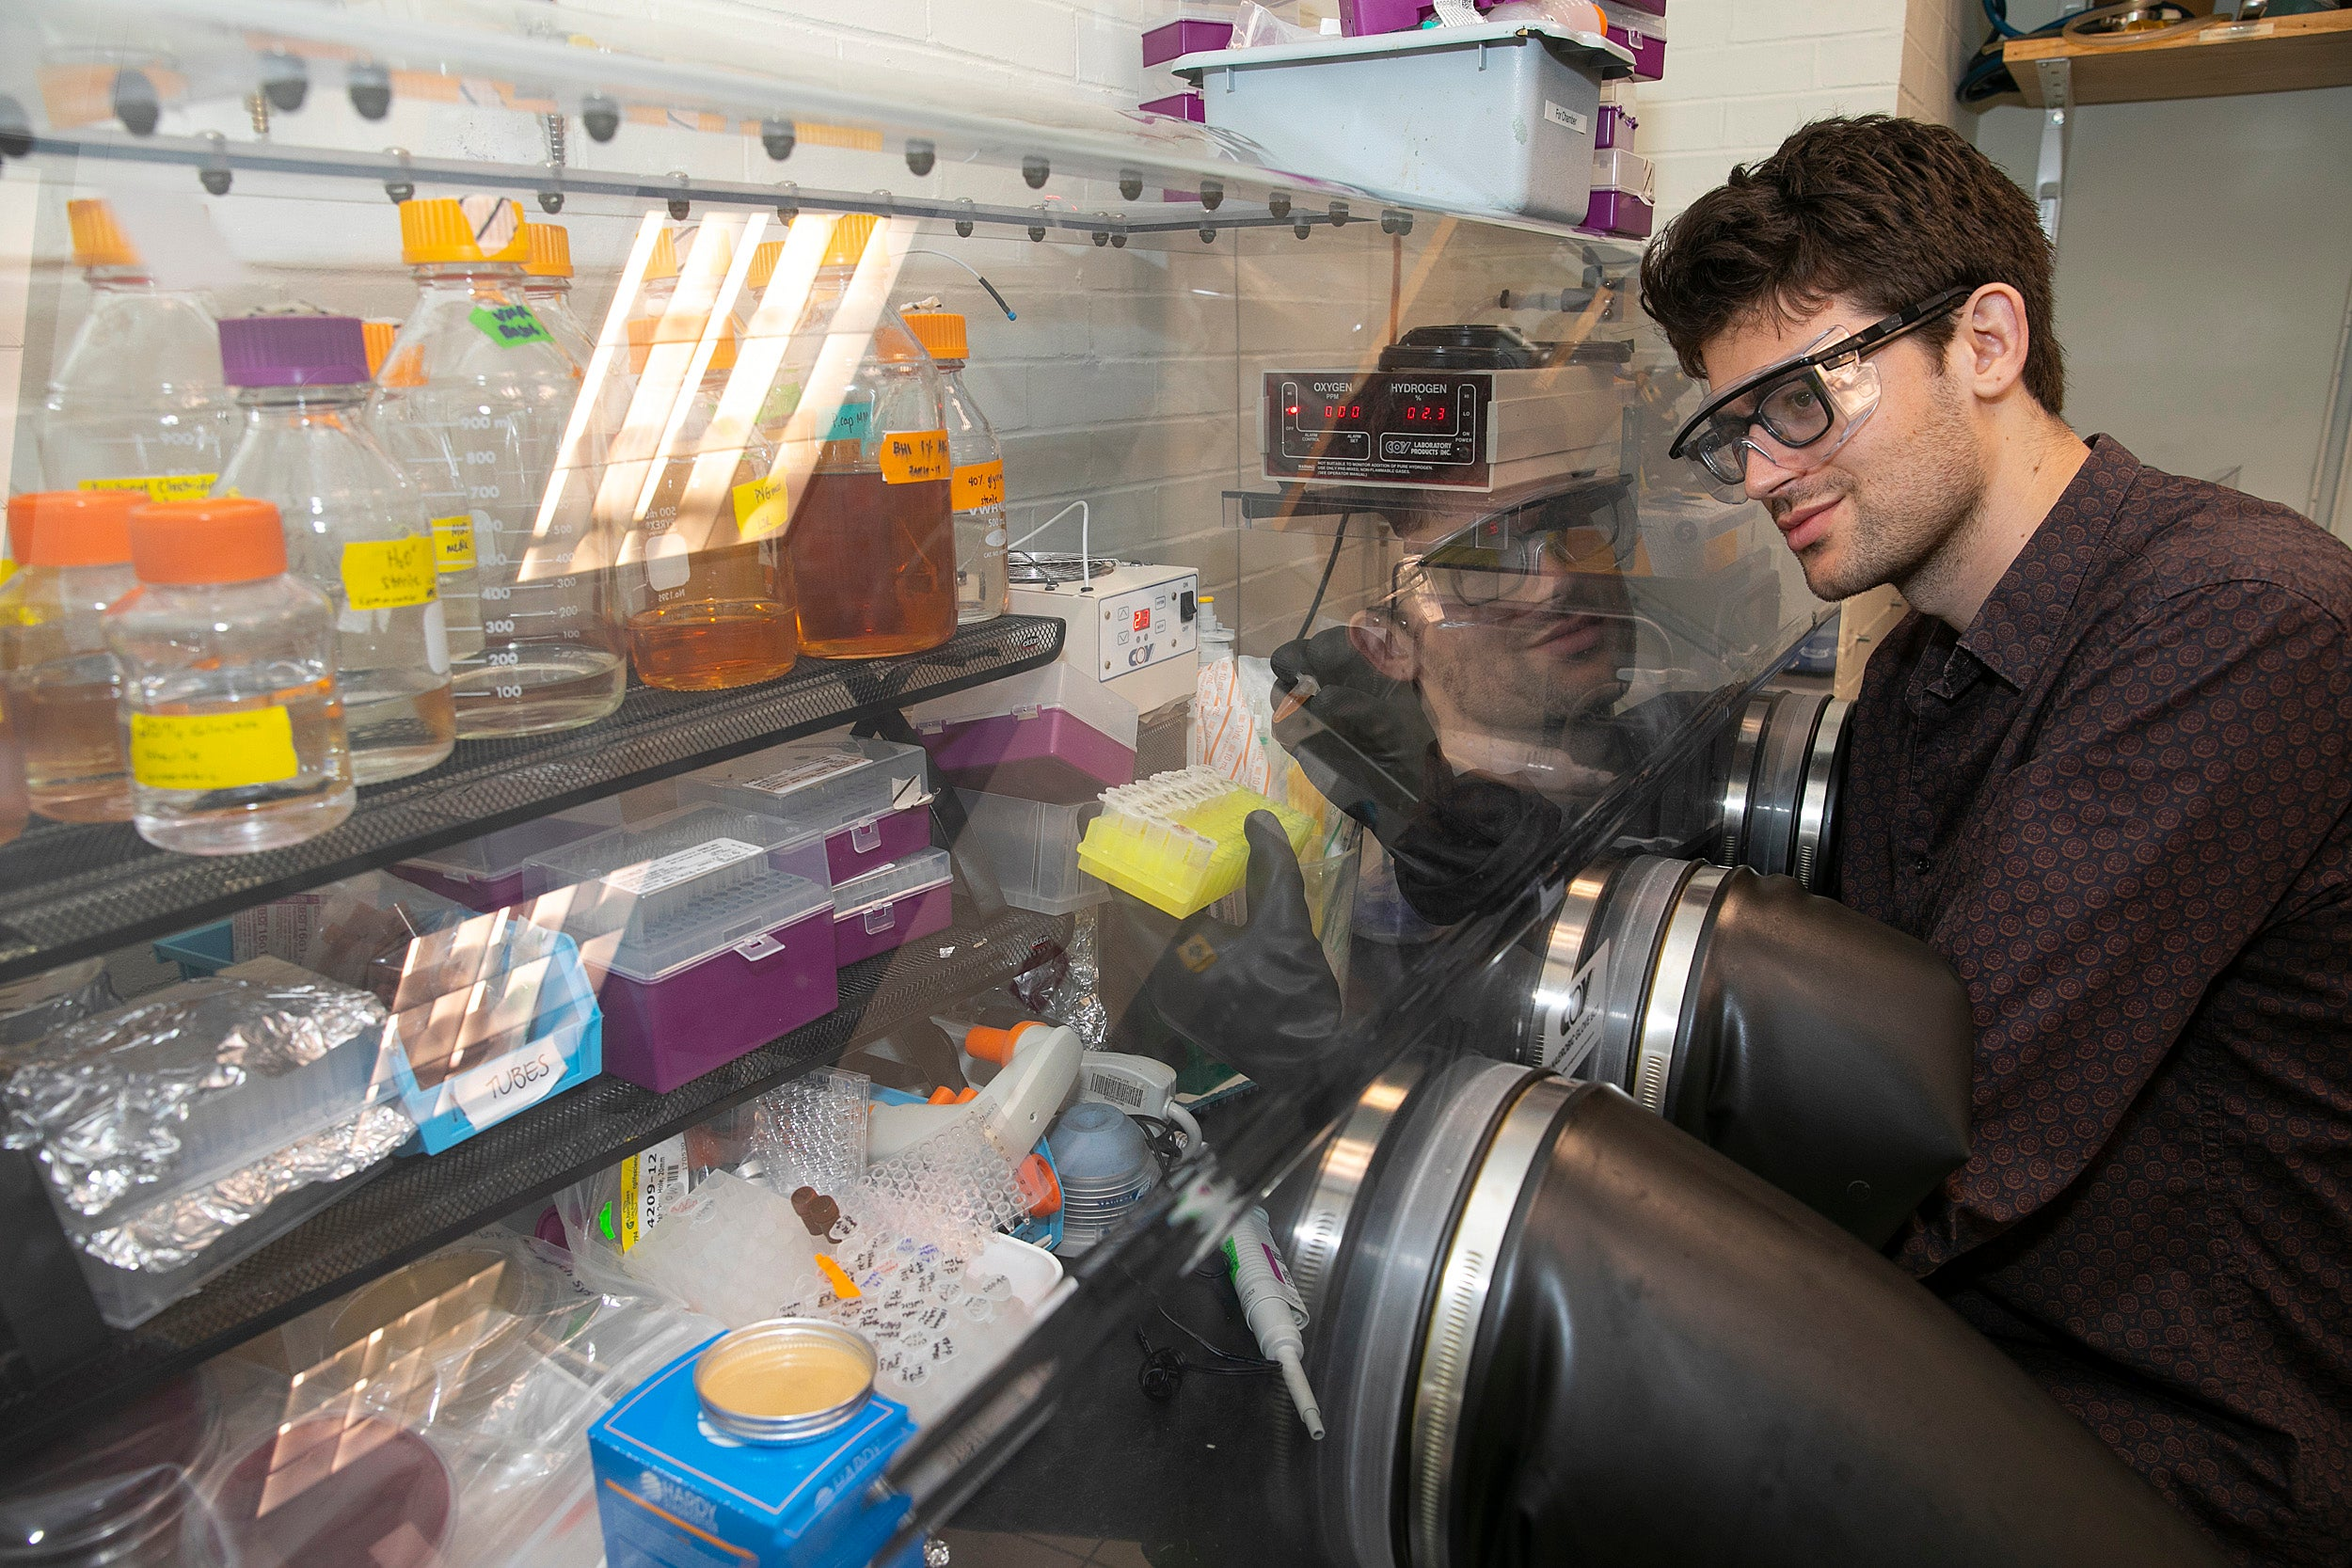 Grad student works in the lab